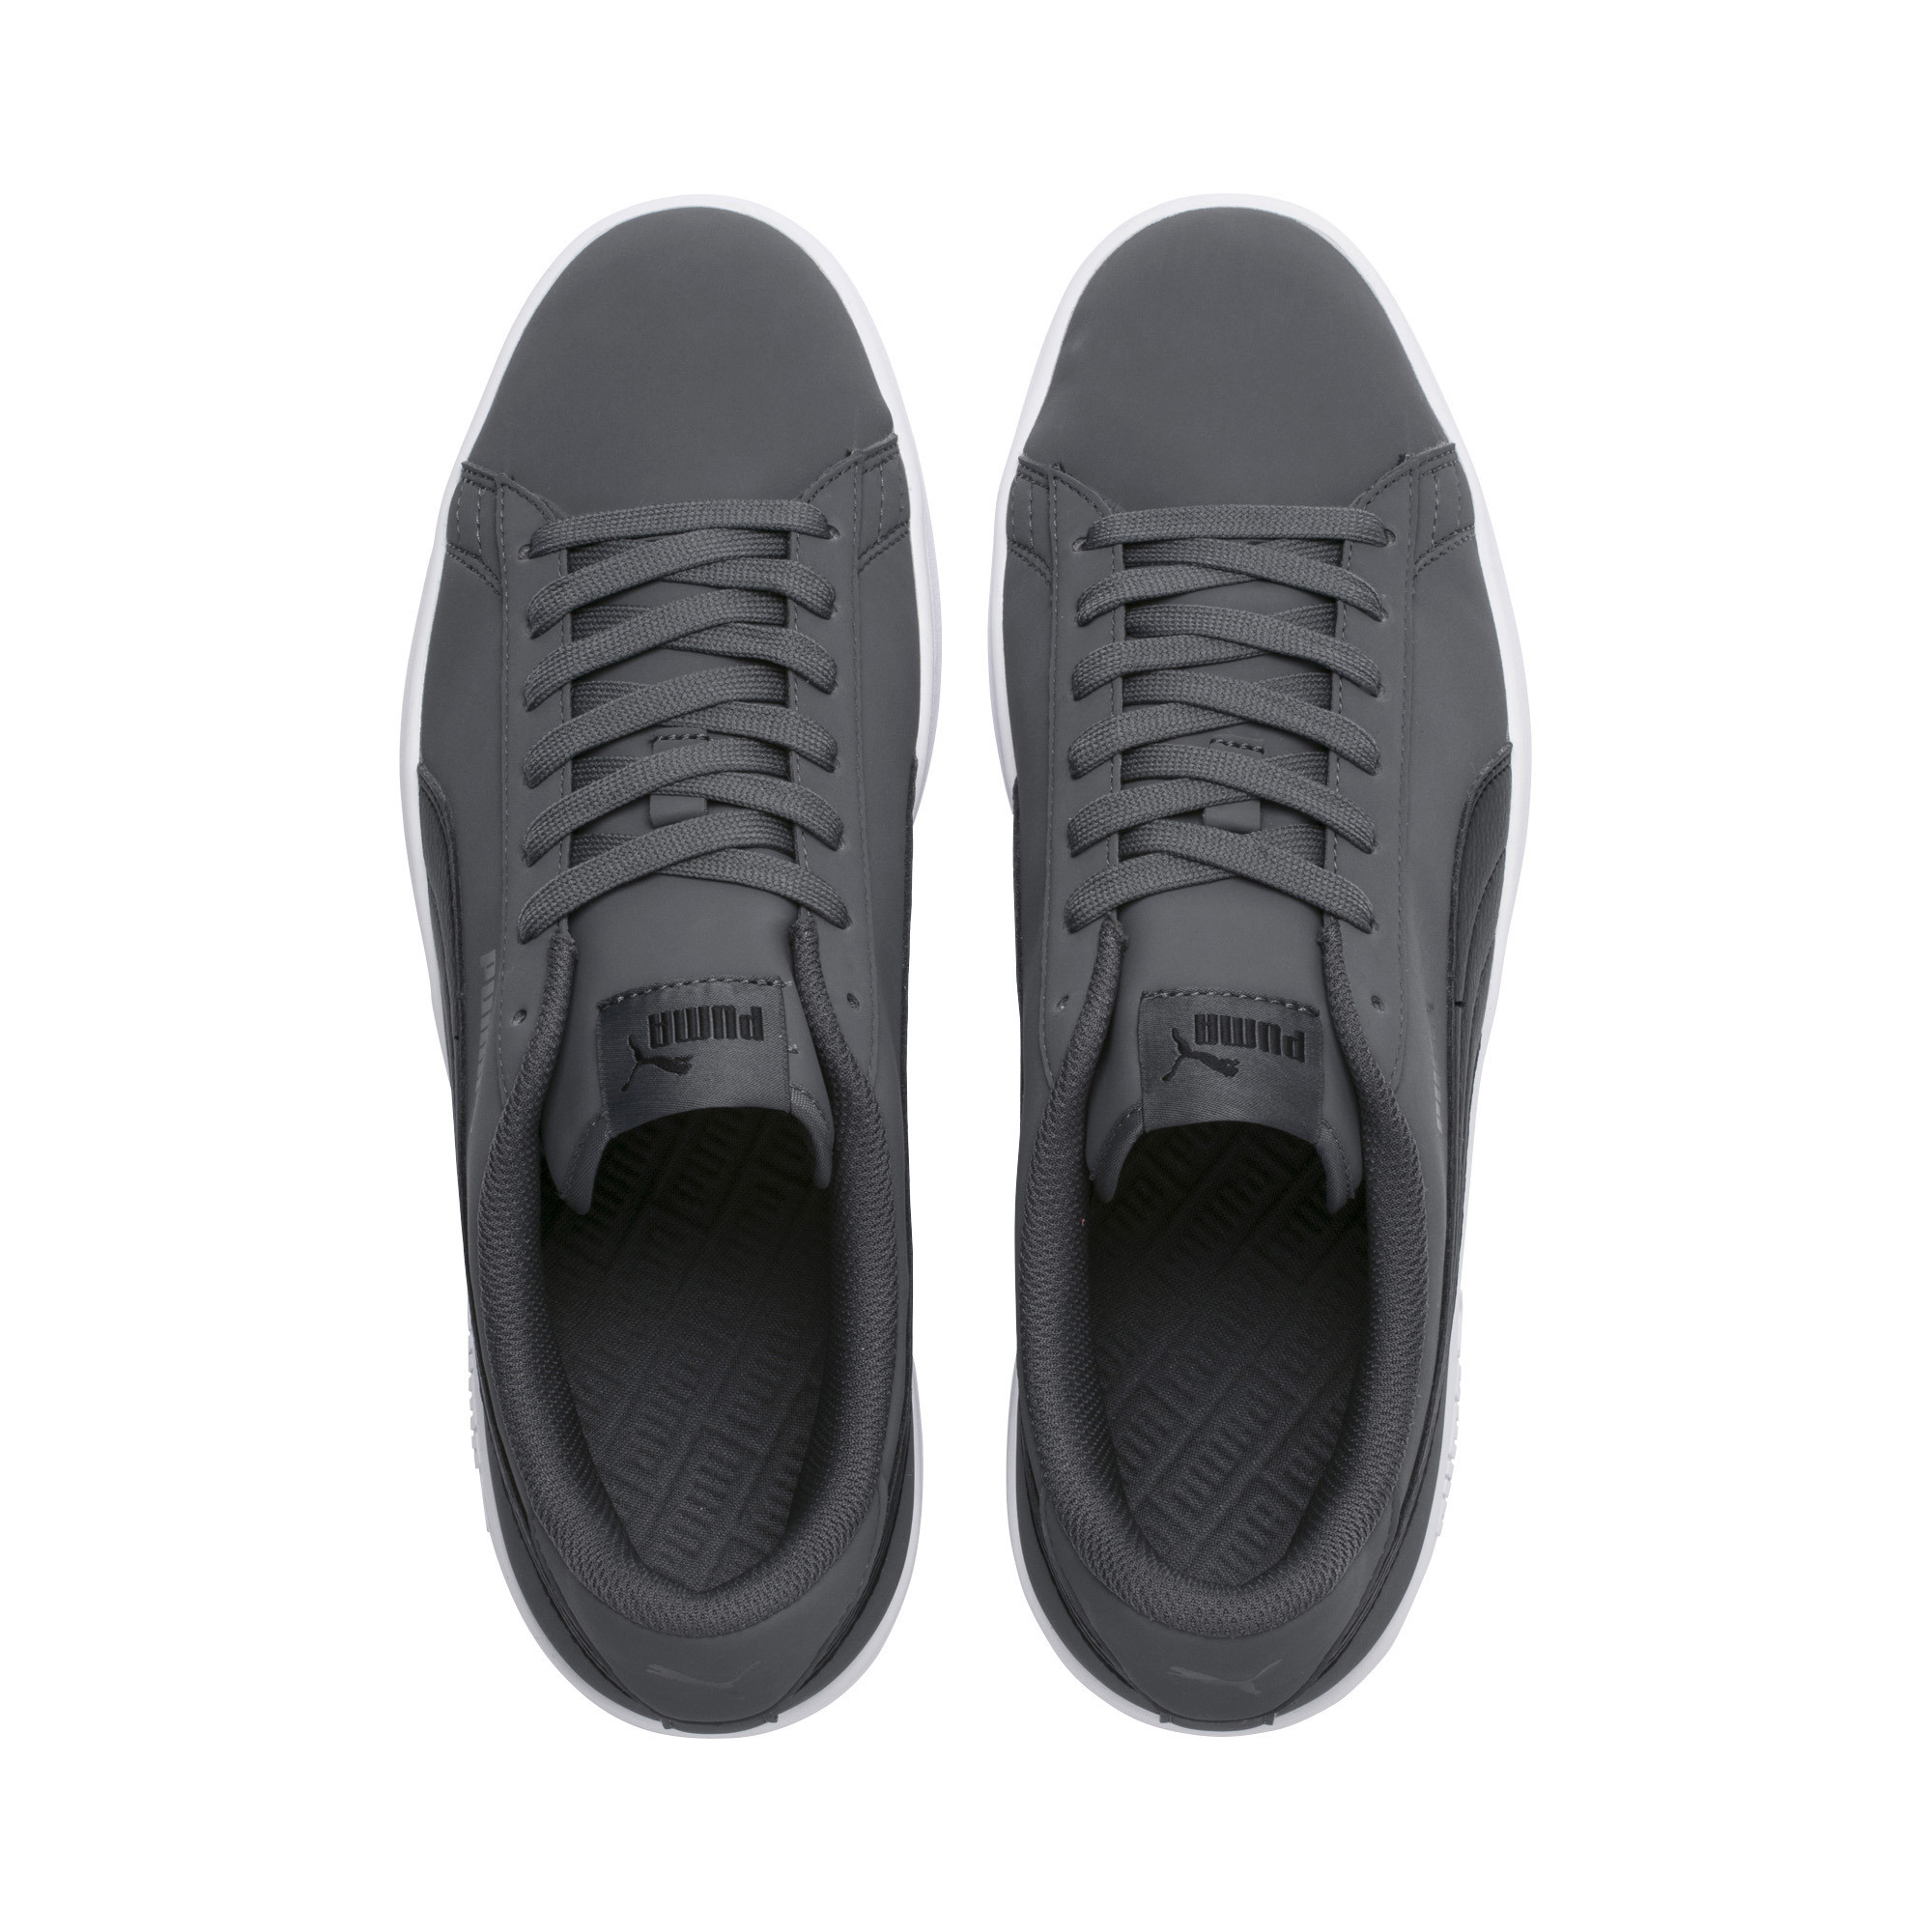 PUMA-PUMA-Smash-v2-Nubuck-Men-039-s-Sneakers-Men-Shoe-Basics thumbnail 13